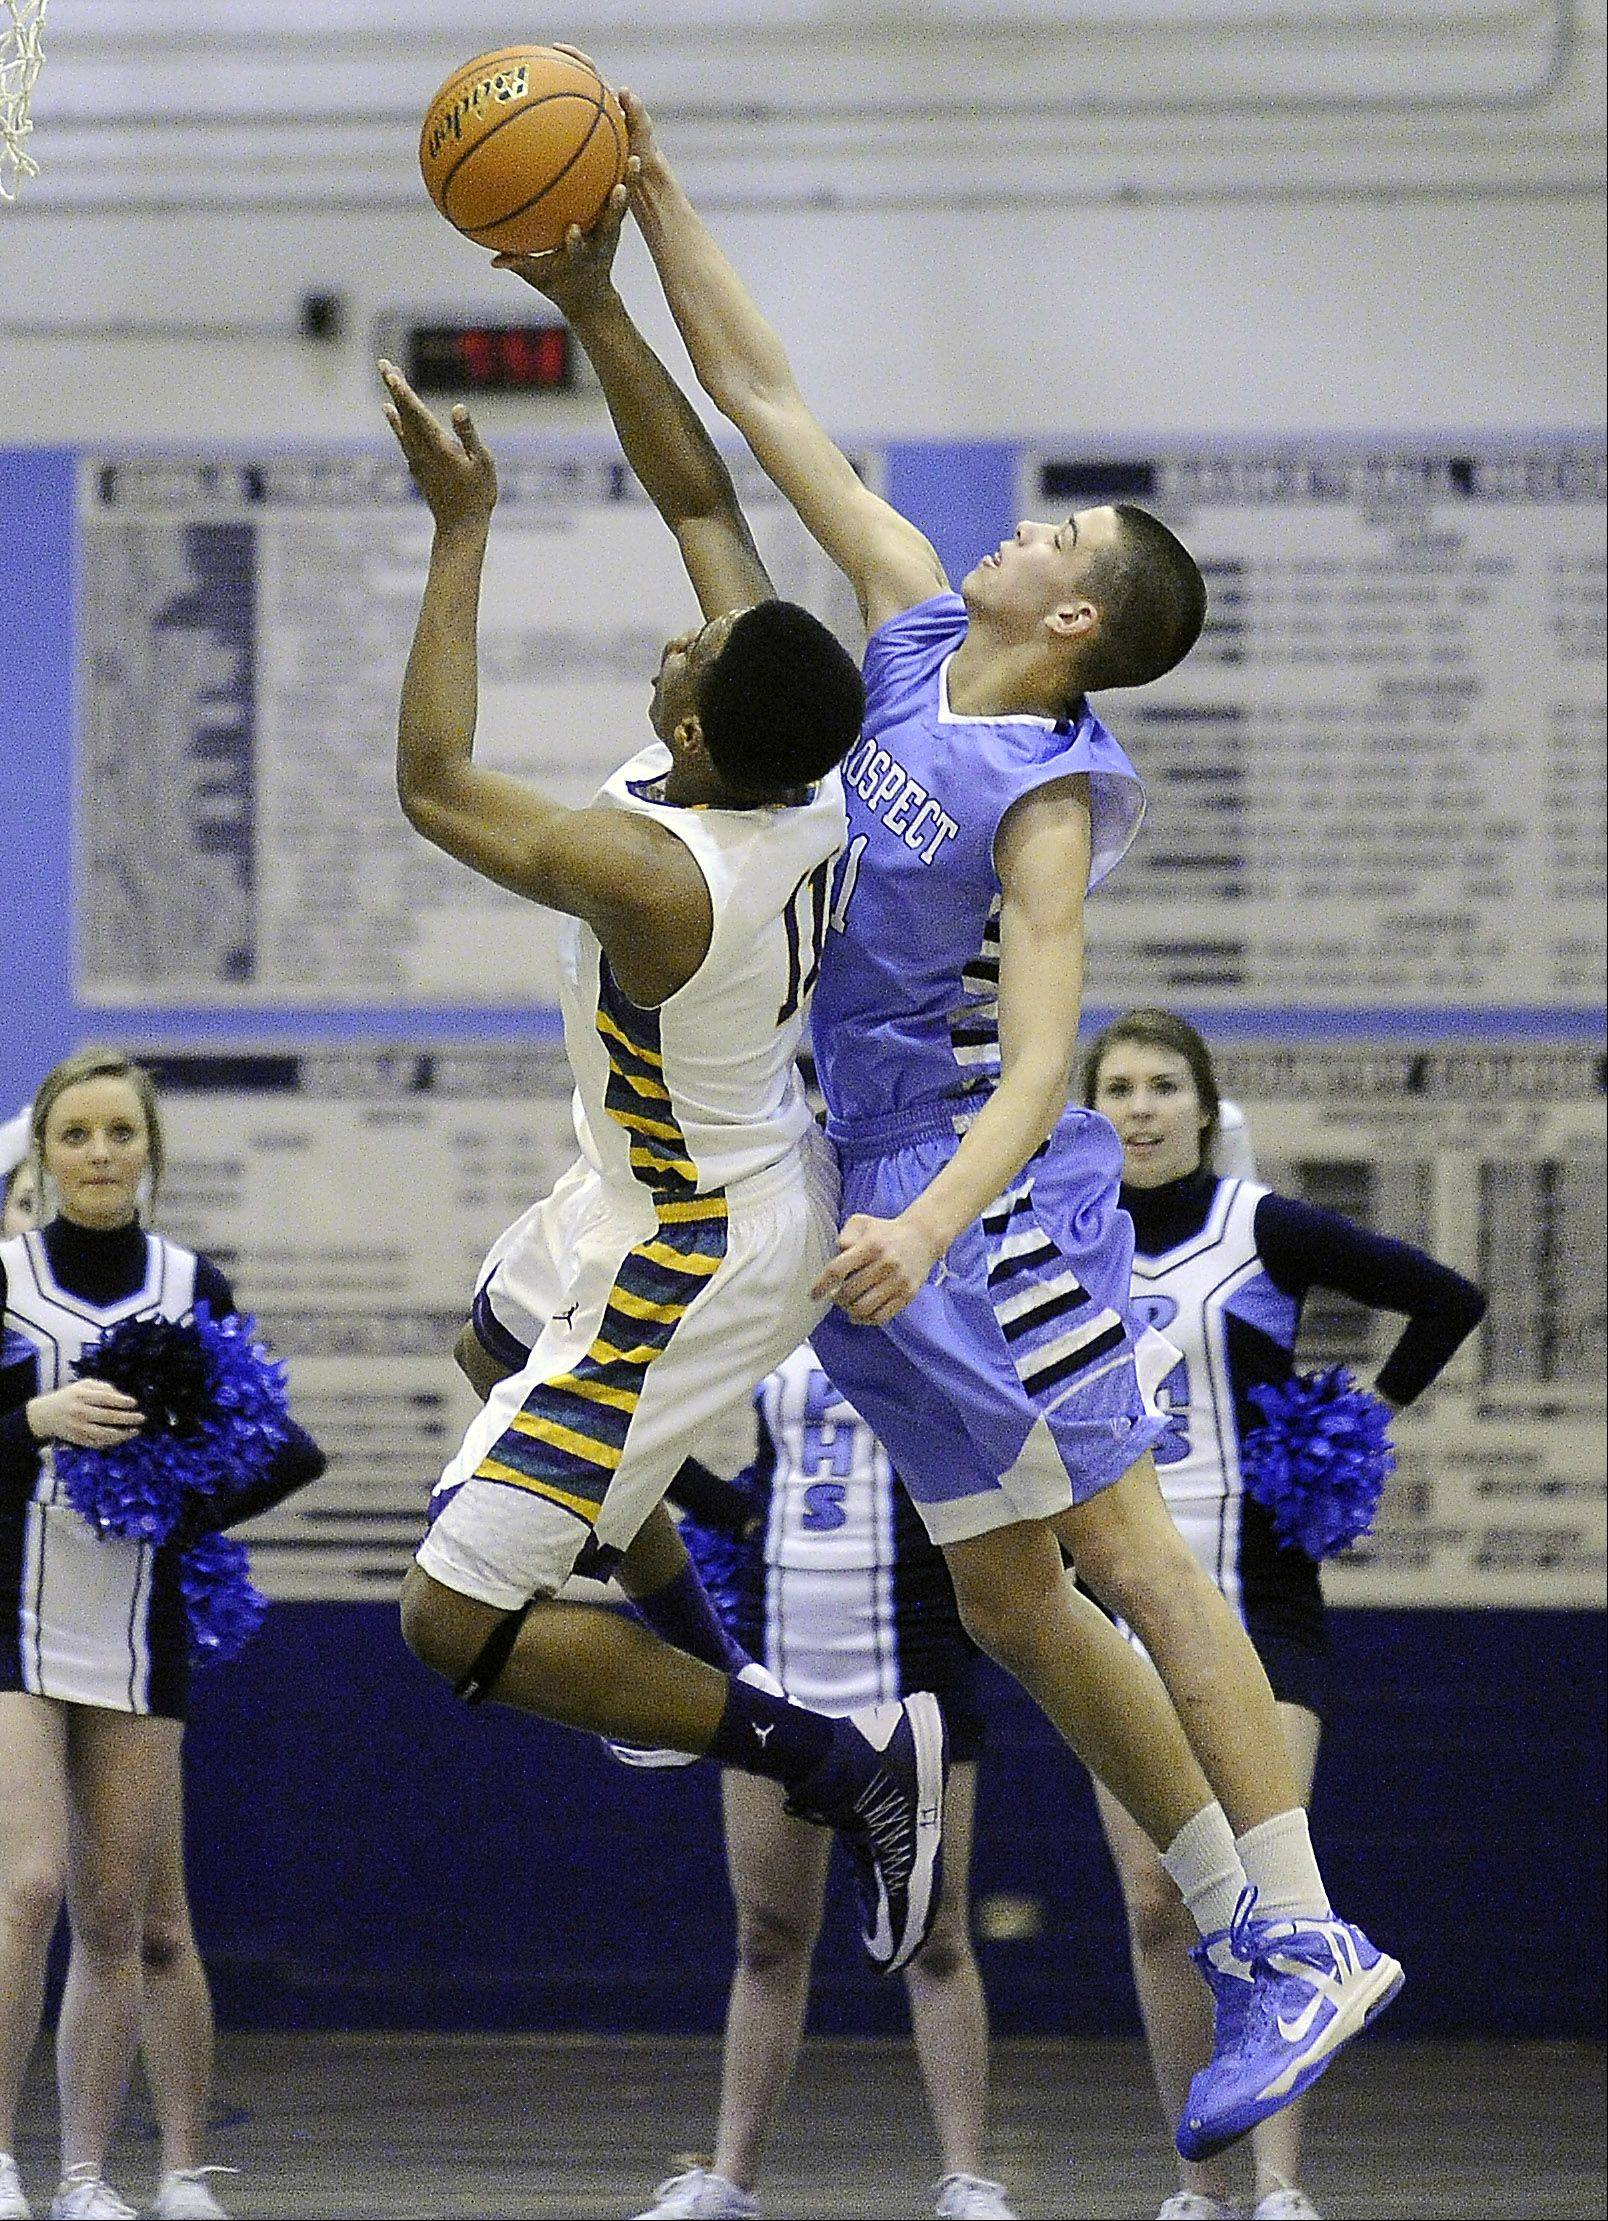 Waukegan finds winning pace at Prospect